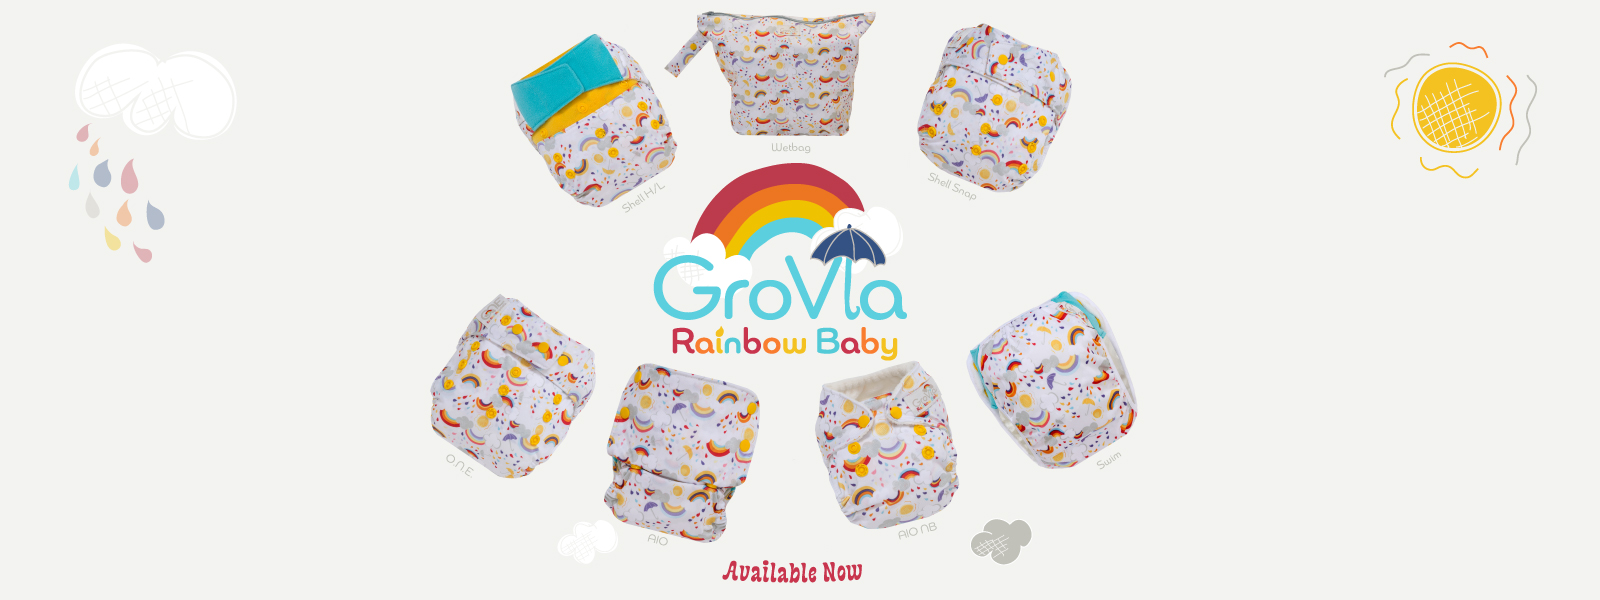 grovia cloth diapers - rainbow baby launch